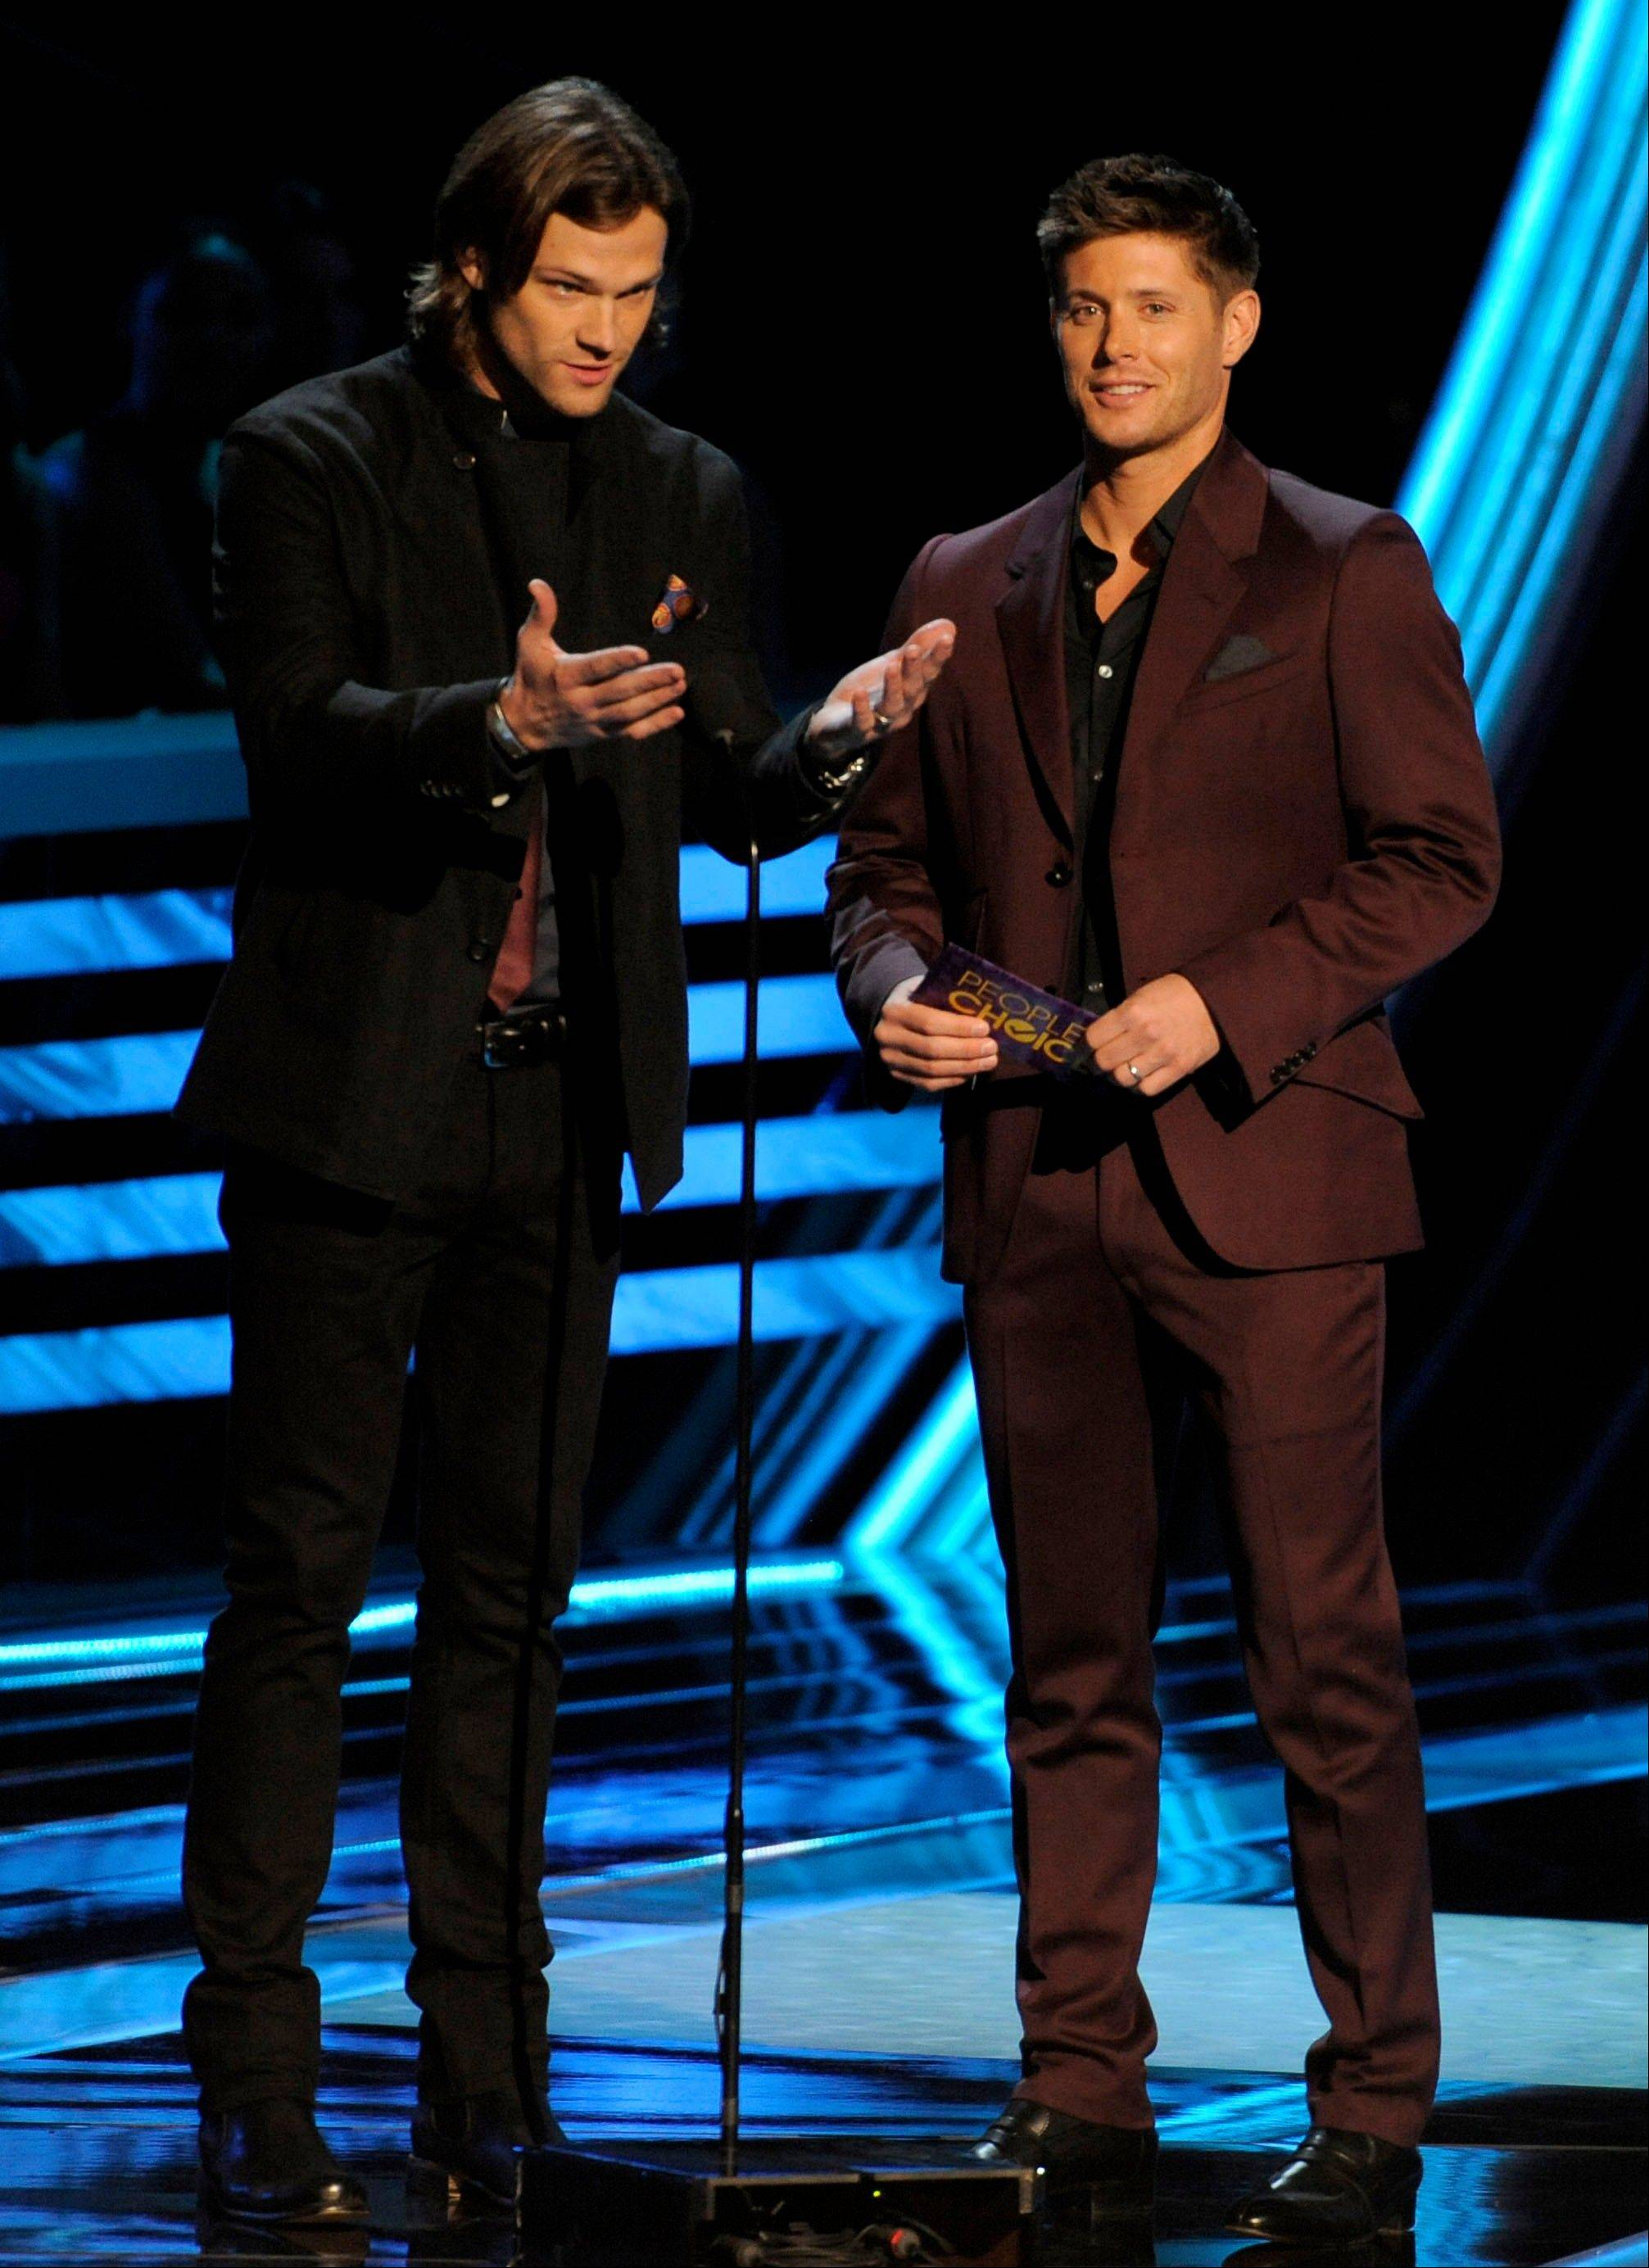 Jared Padalecki, left, and Jensen Ackles present the award for favorite band at the People's Choice Awards at the Nokia Theatre on Wednesday Jan. 9, 2013, in Los Angeles.